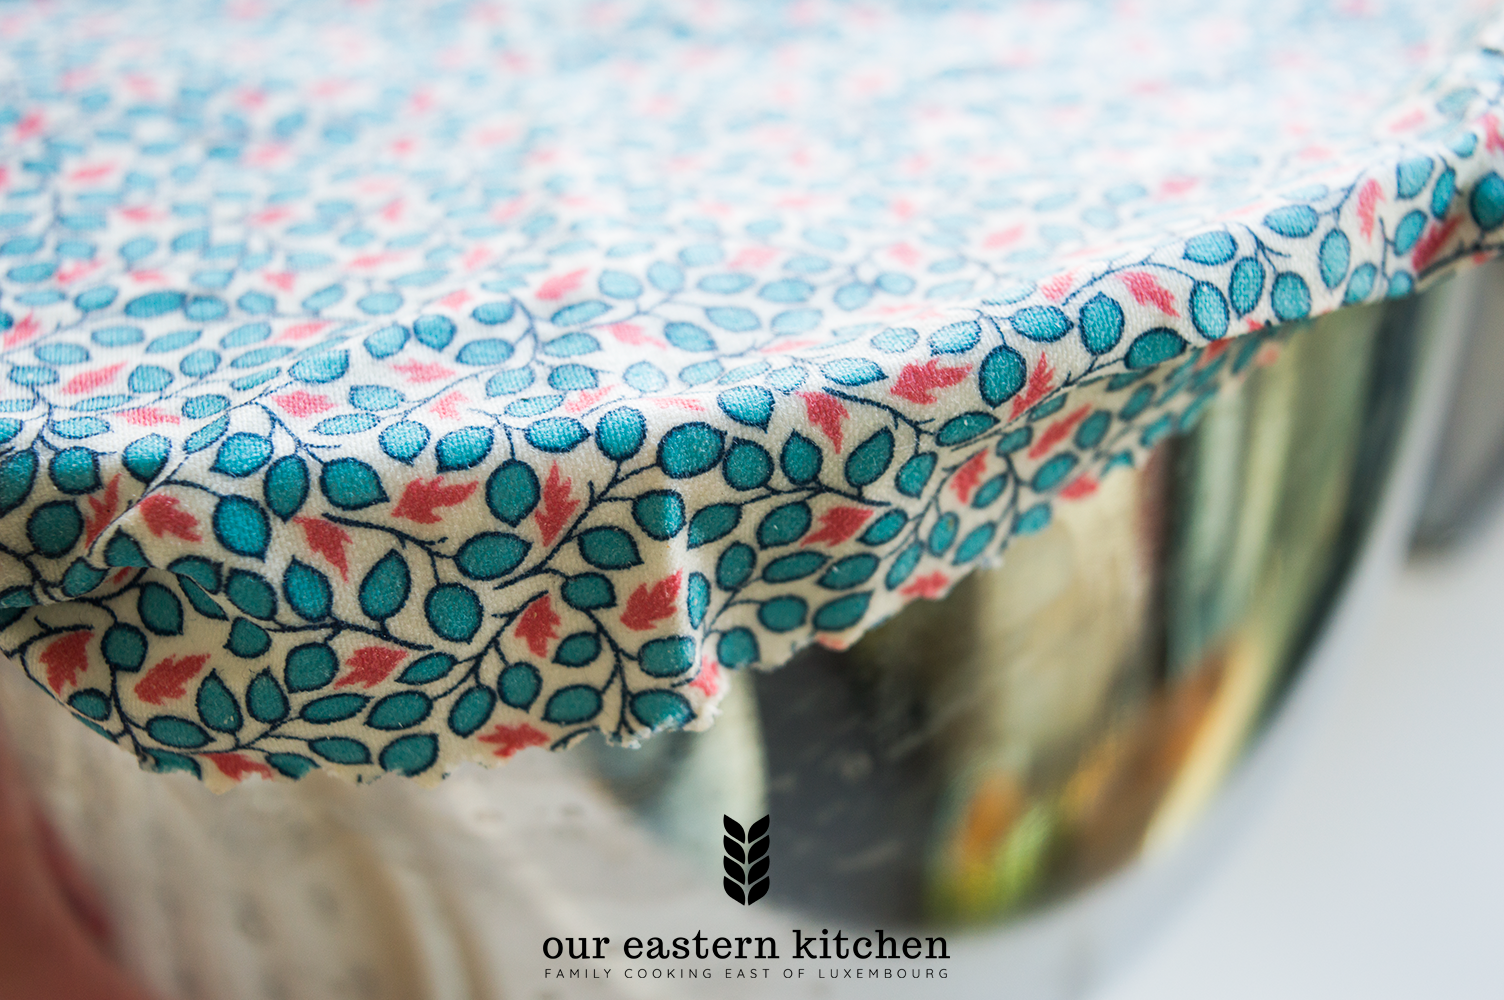 Our_Eastern_Kitchen_Wax_Fabric007.png